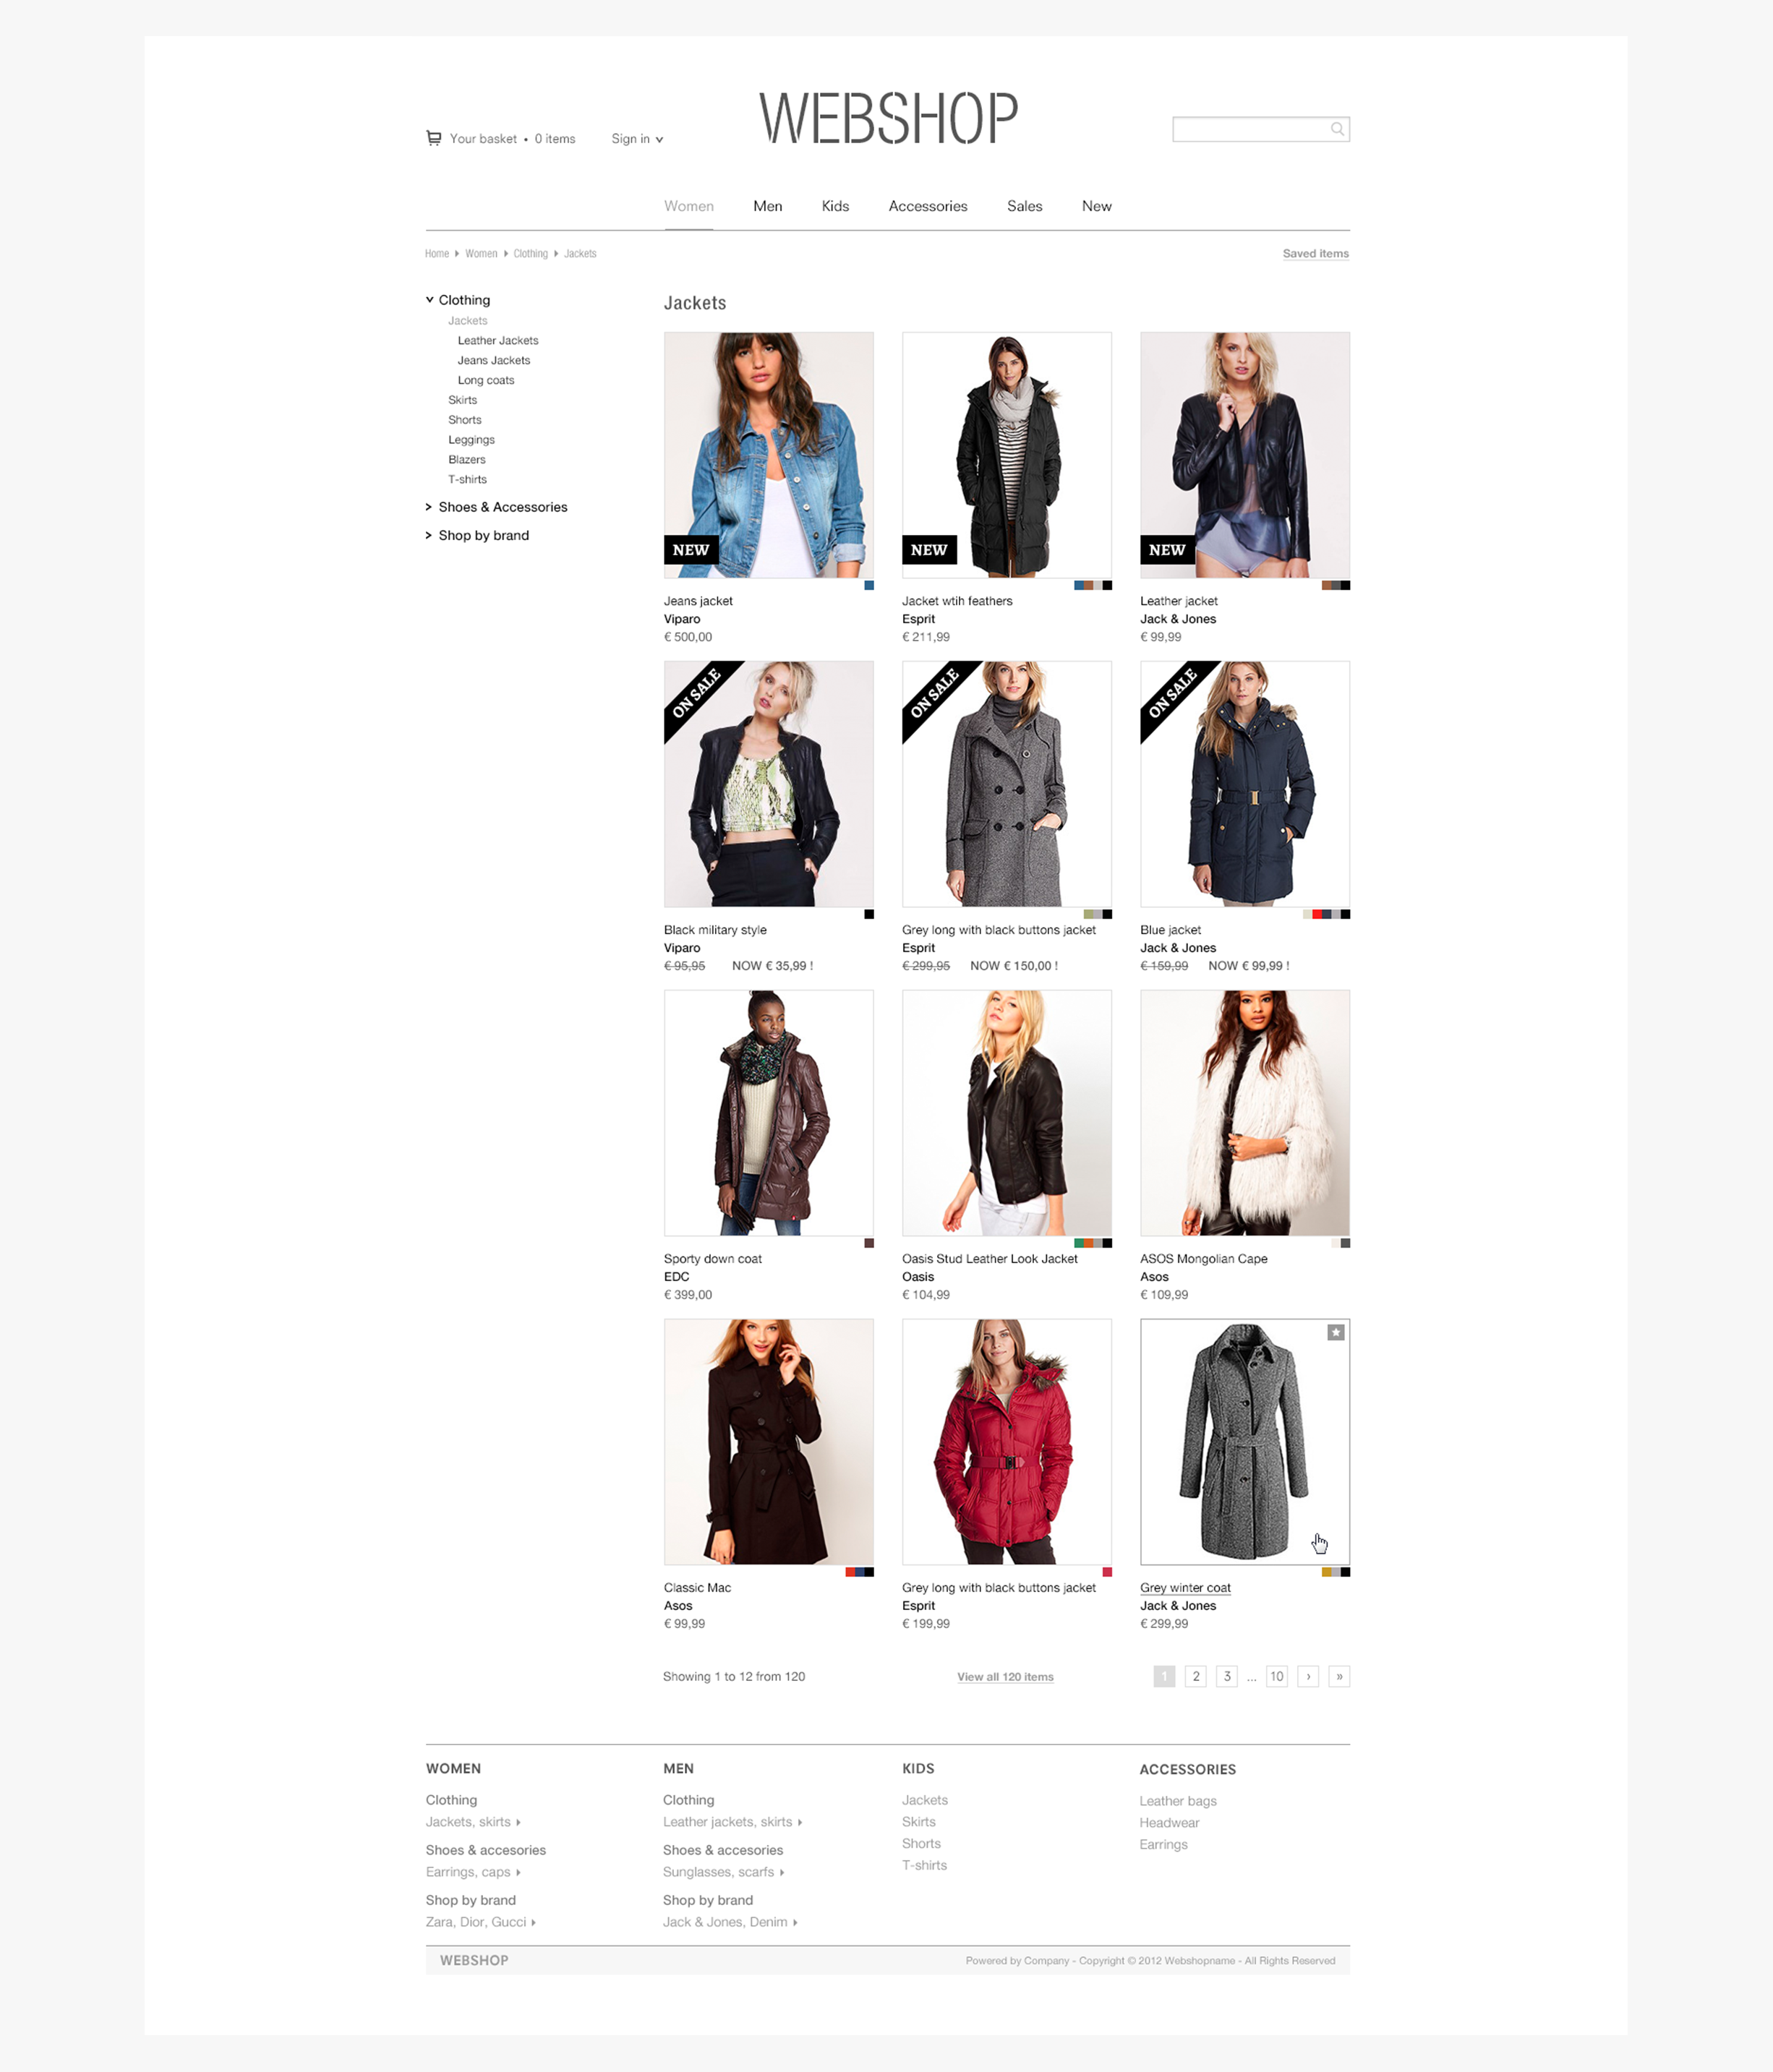 Webshop layout - product pages